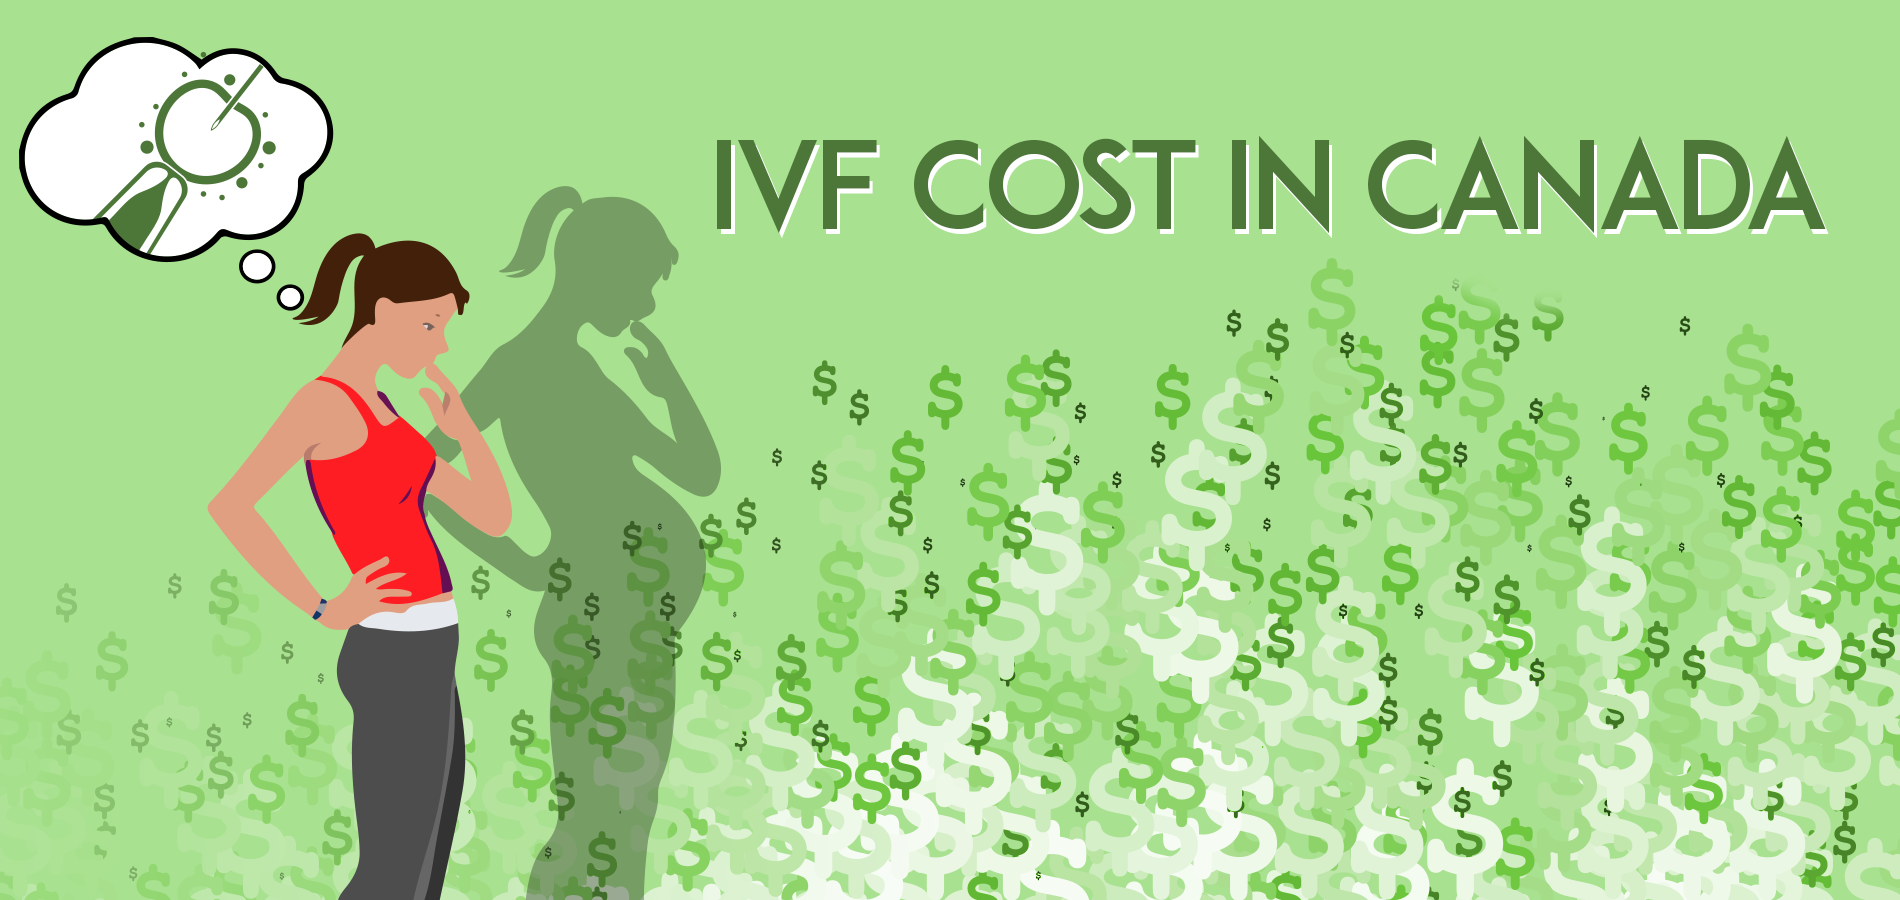 The Cost of IVF in Canada